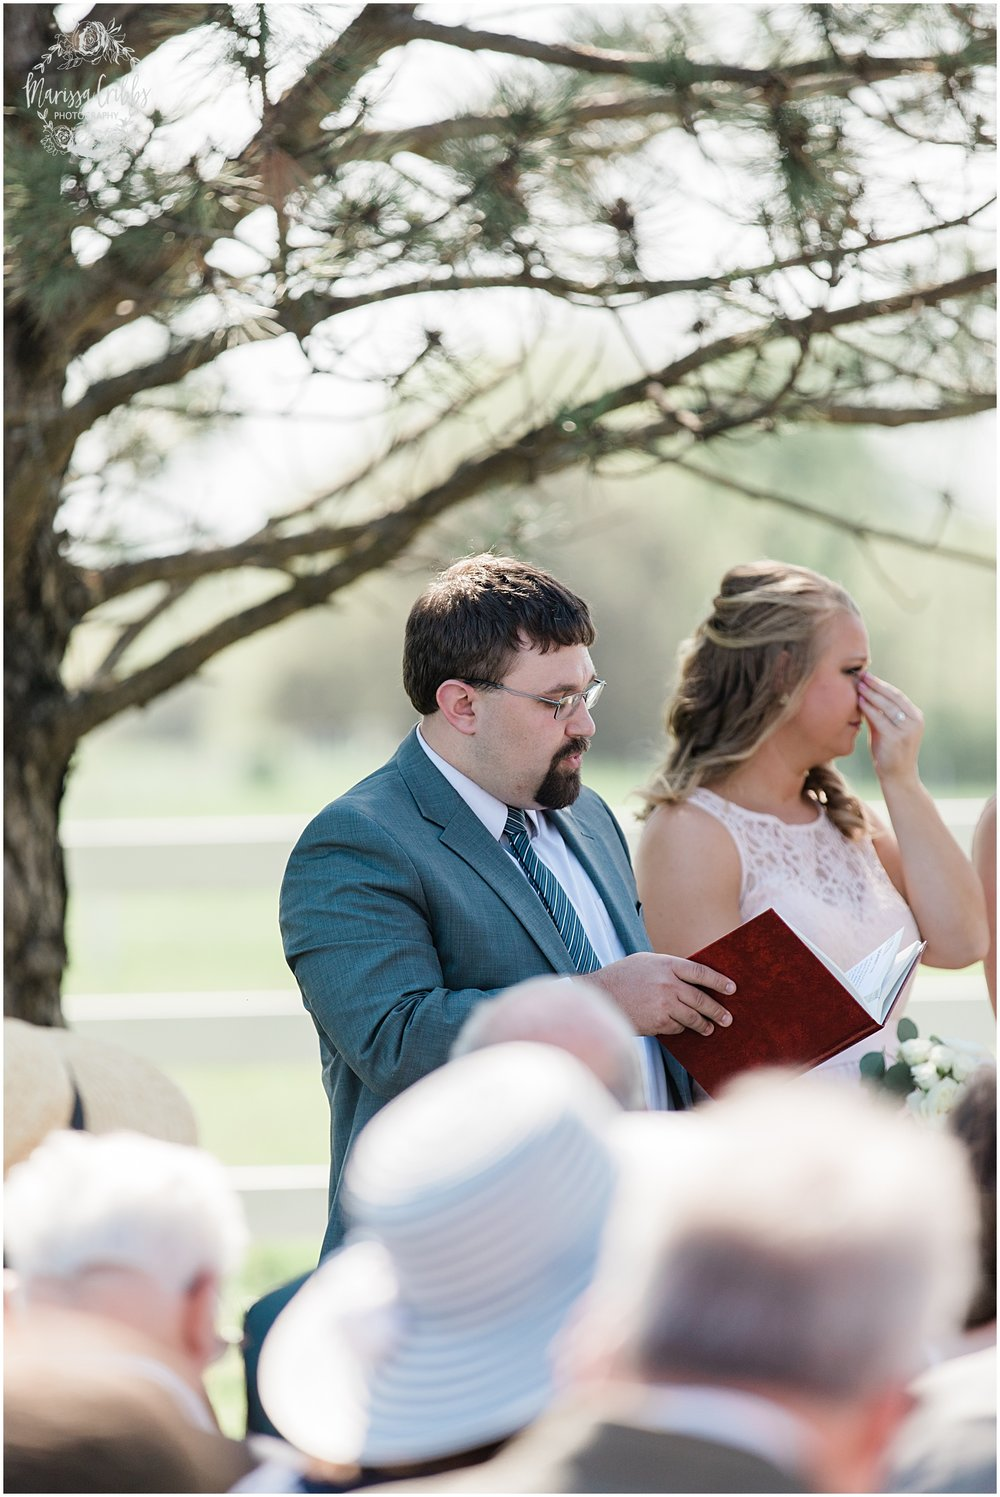 ANDREA & MICHAEL WEDDING | HICKORY CREEK RANCH | MARISSA CRIBBS PHOTOGRAPHY_4872.jpg